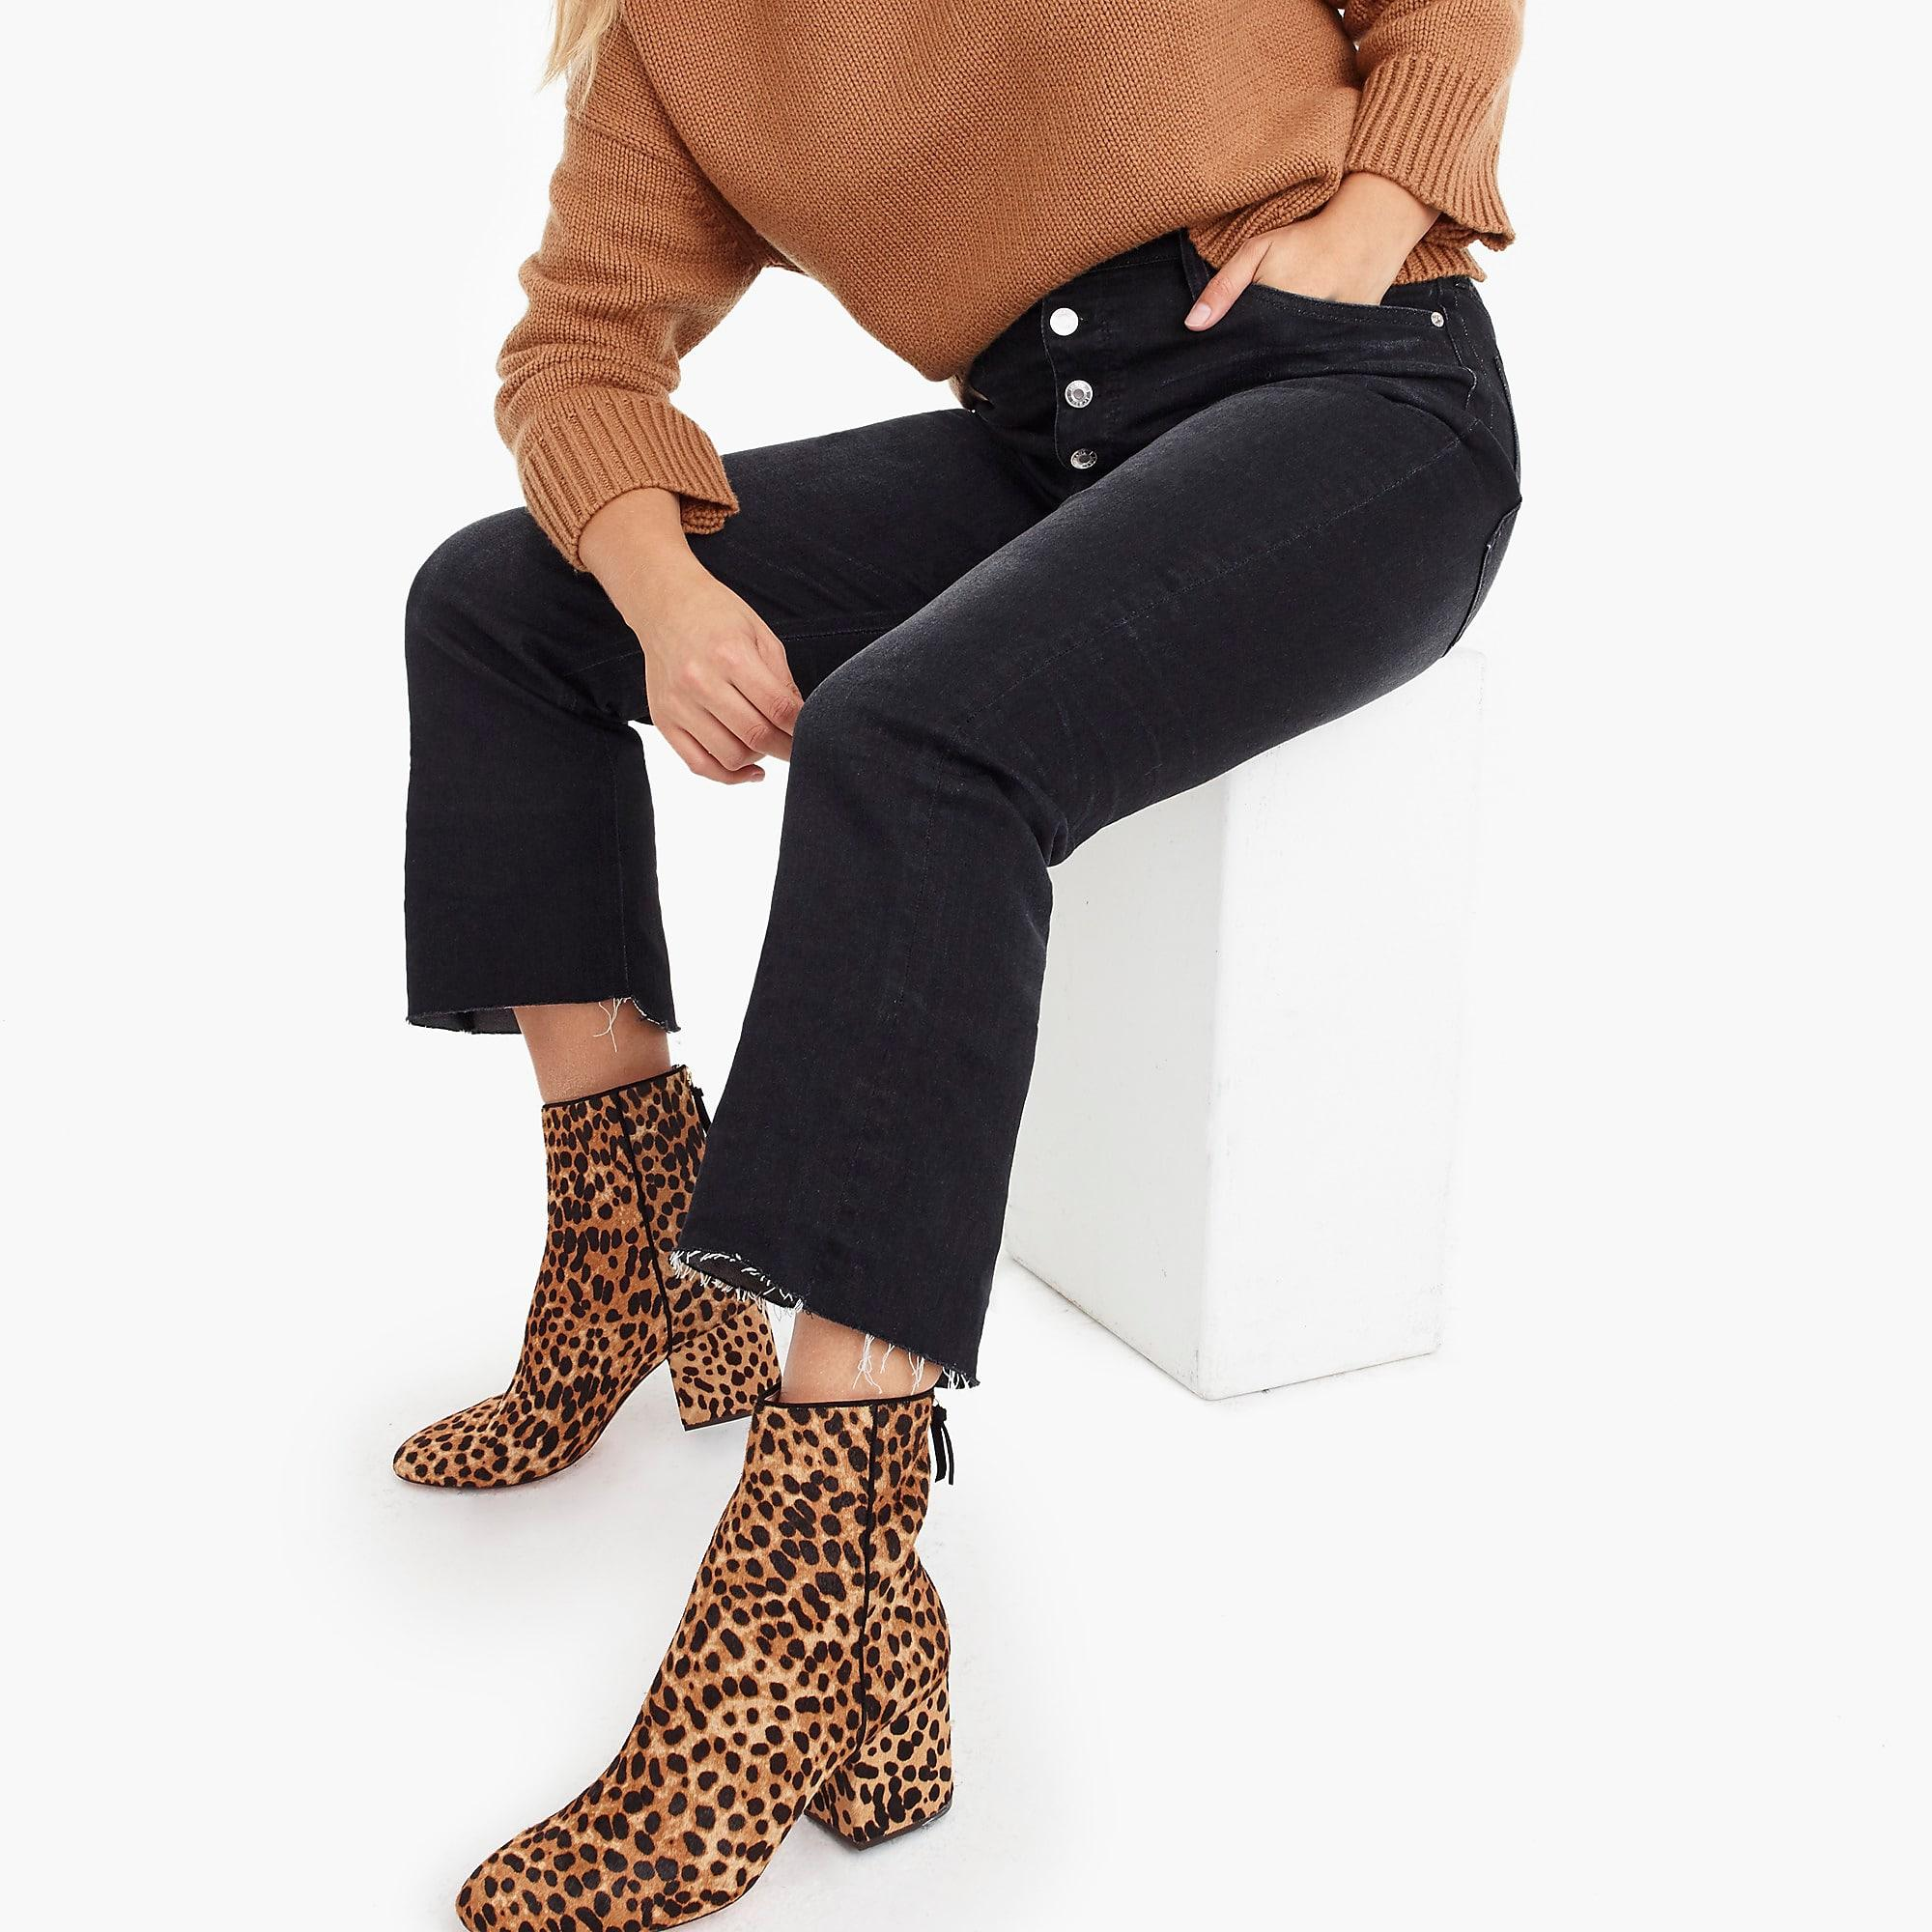 b0e29a56efdfc J.Crew Sadie Ankle Boots In Leopard Calf Hair in Brown - Lyst